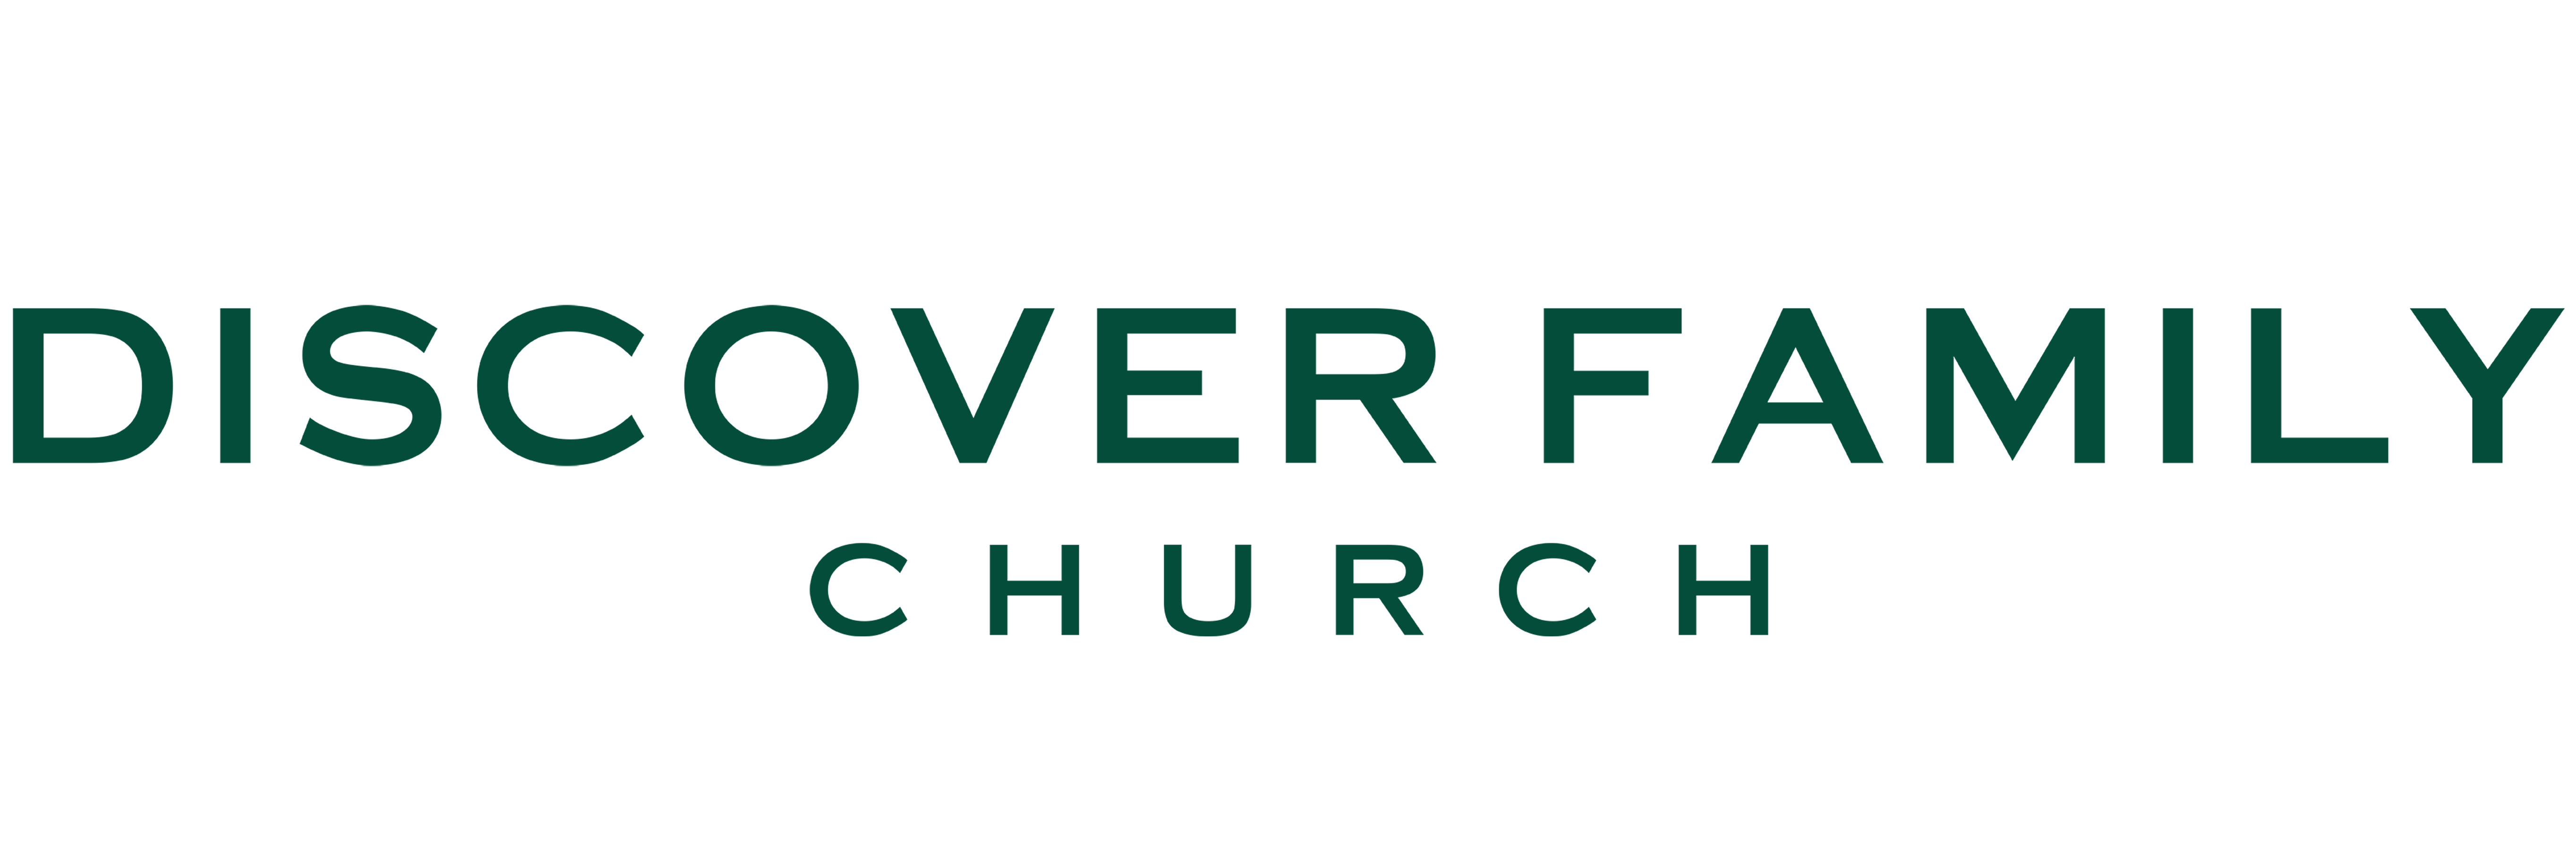 Discover Family Church